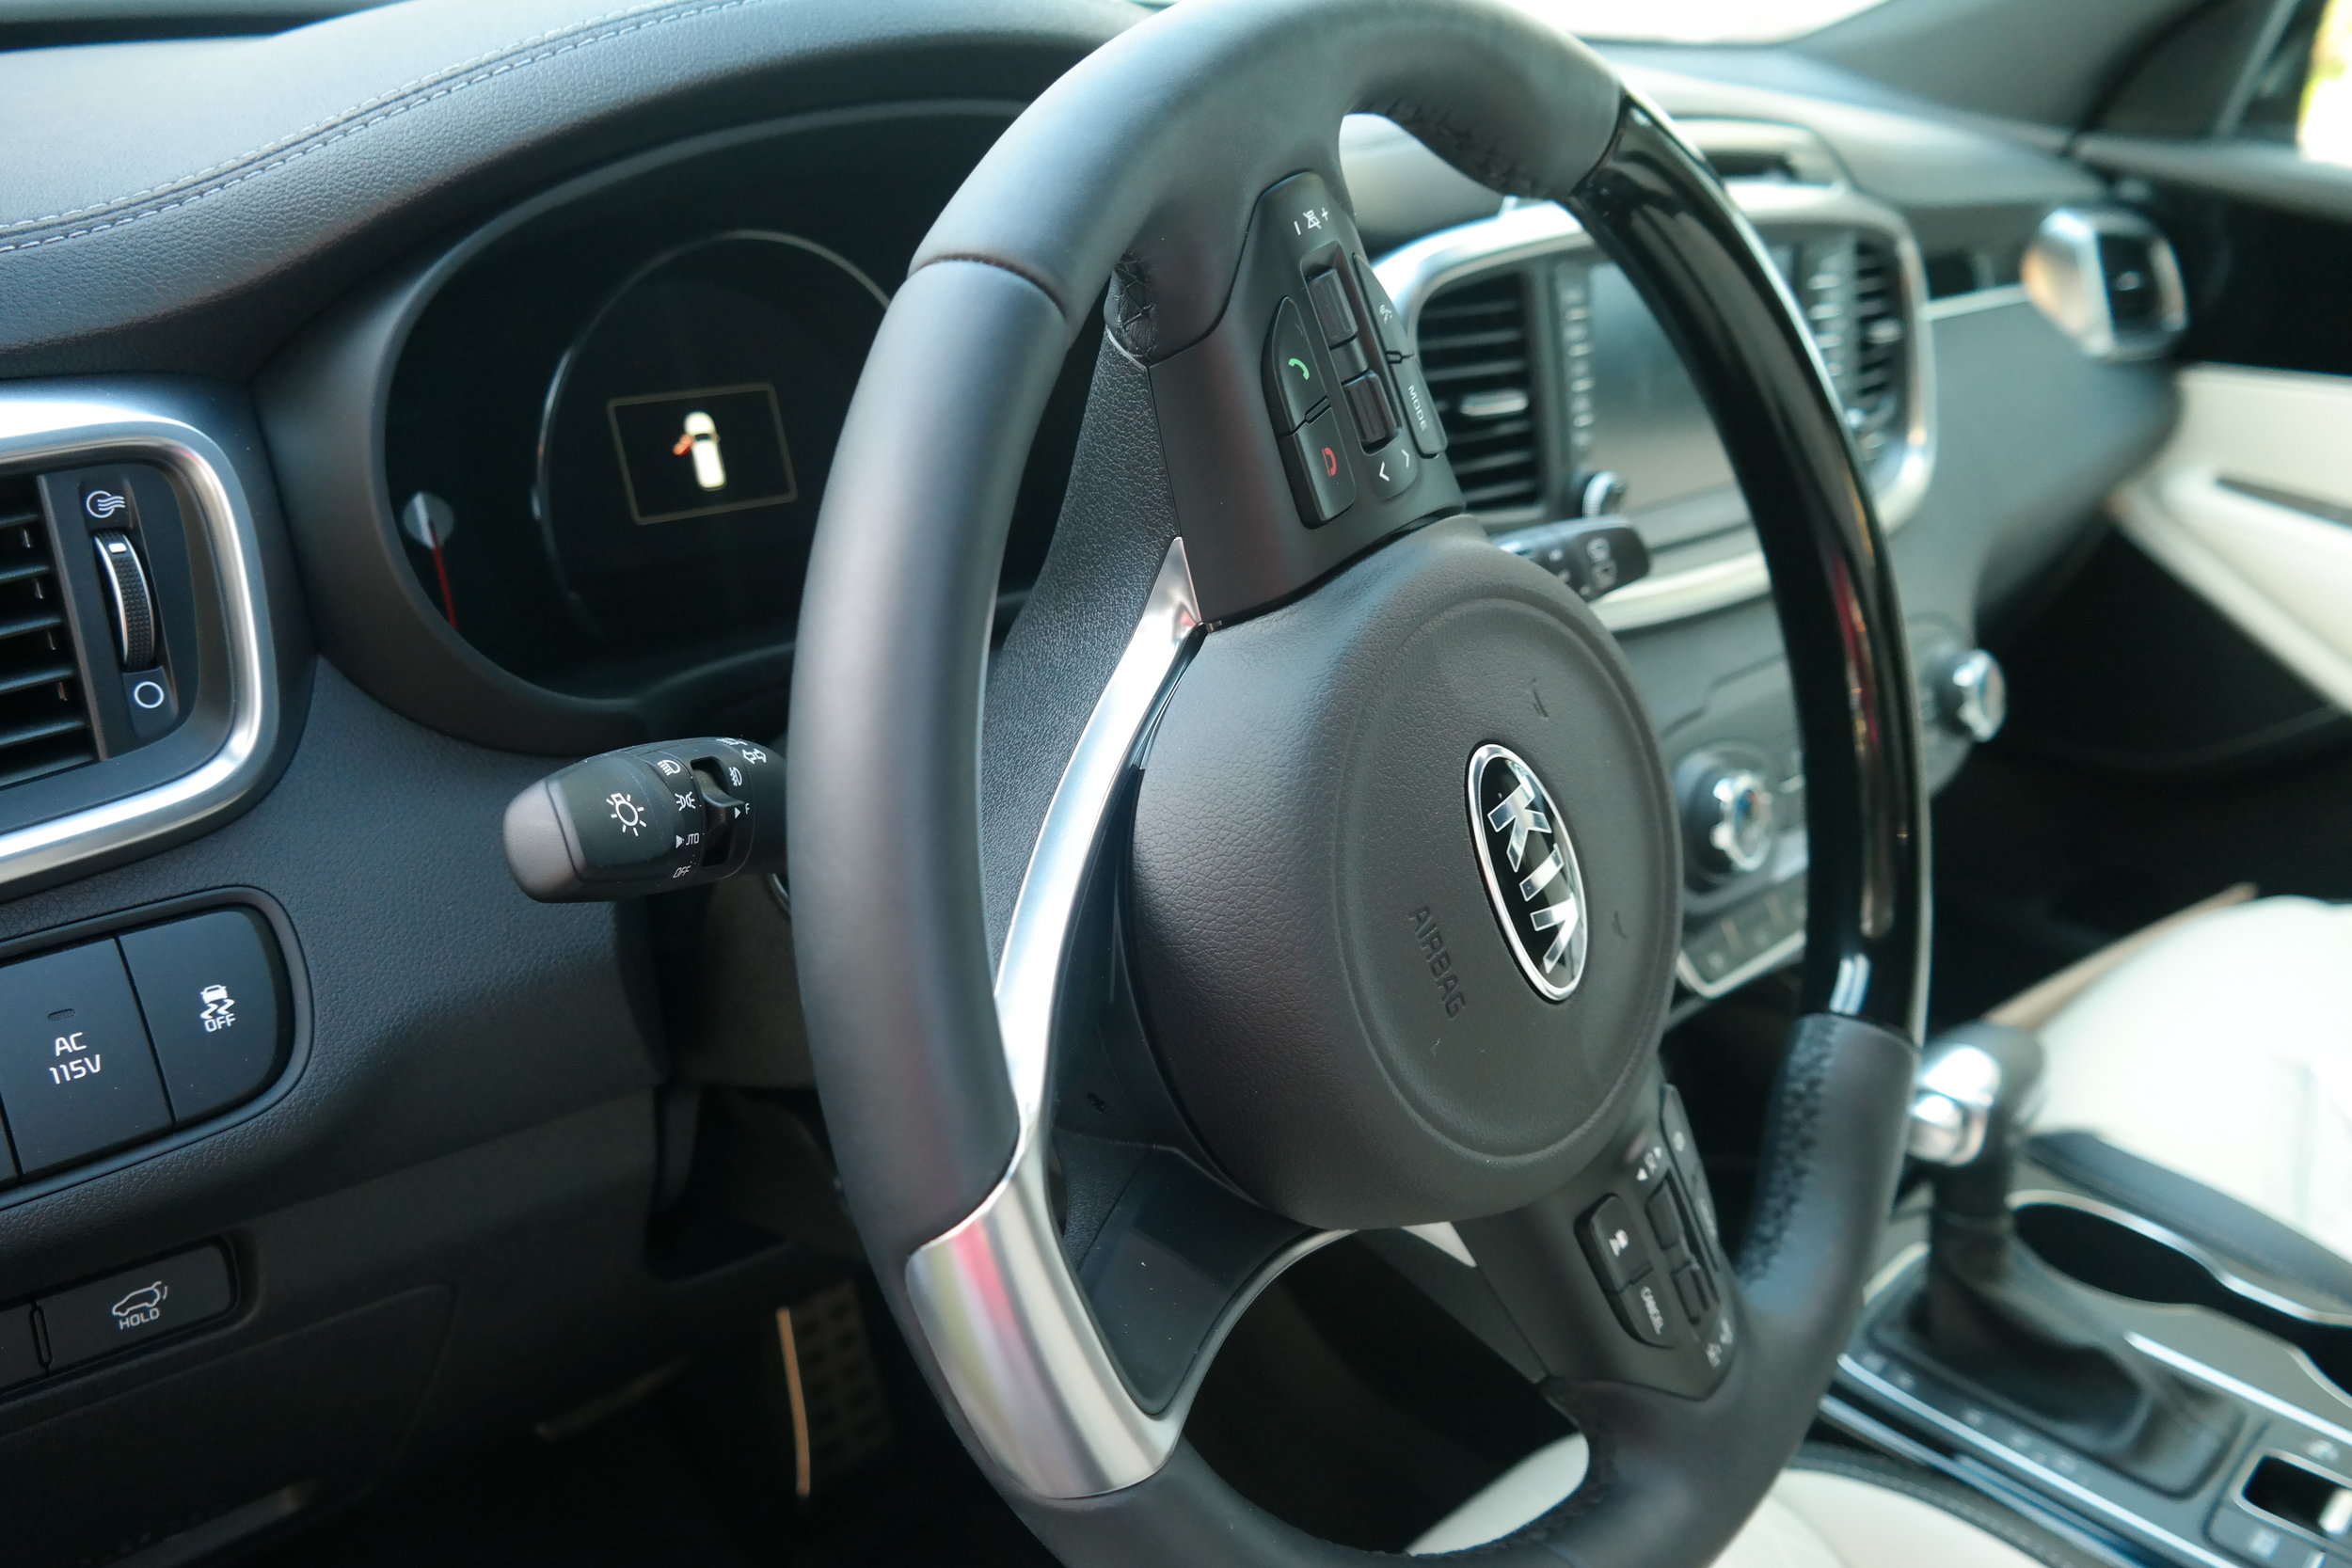 Kia_Sorento_Steering_Wheel.jpg